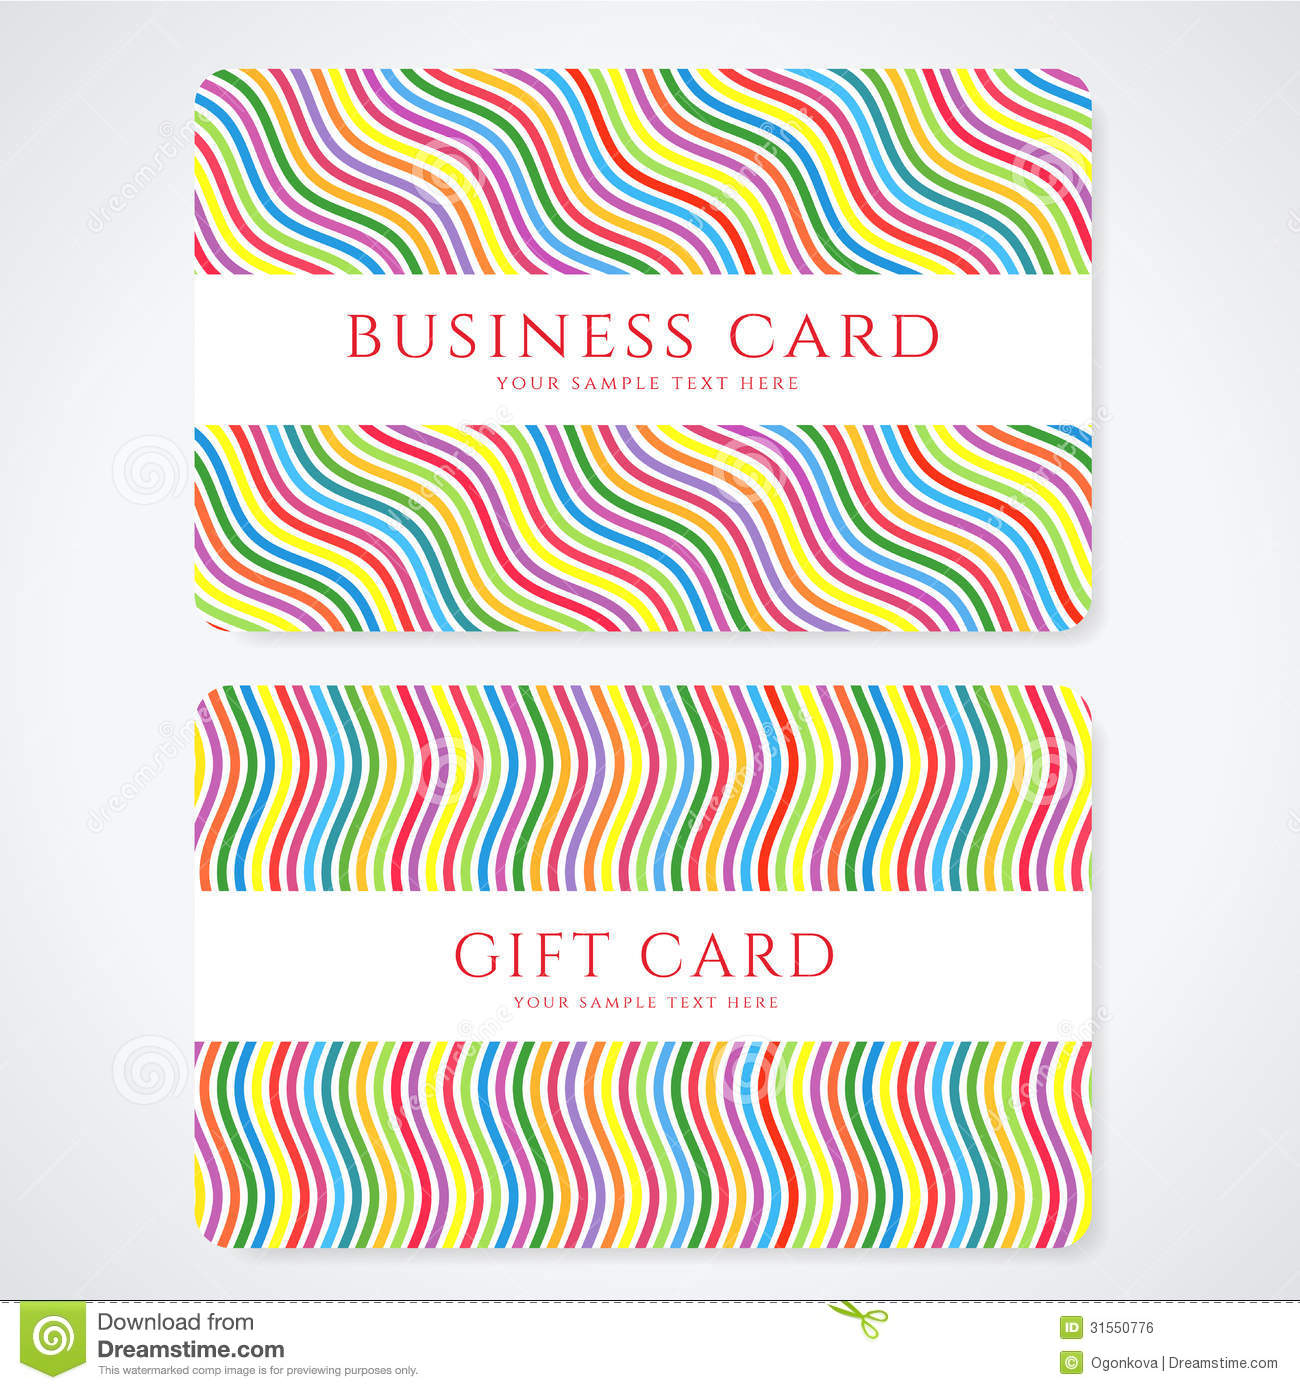 Design of discount card - Background Bright Business Card Colorful Coupon Design Discount